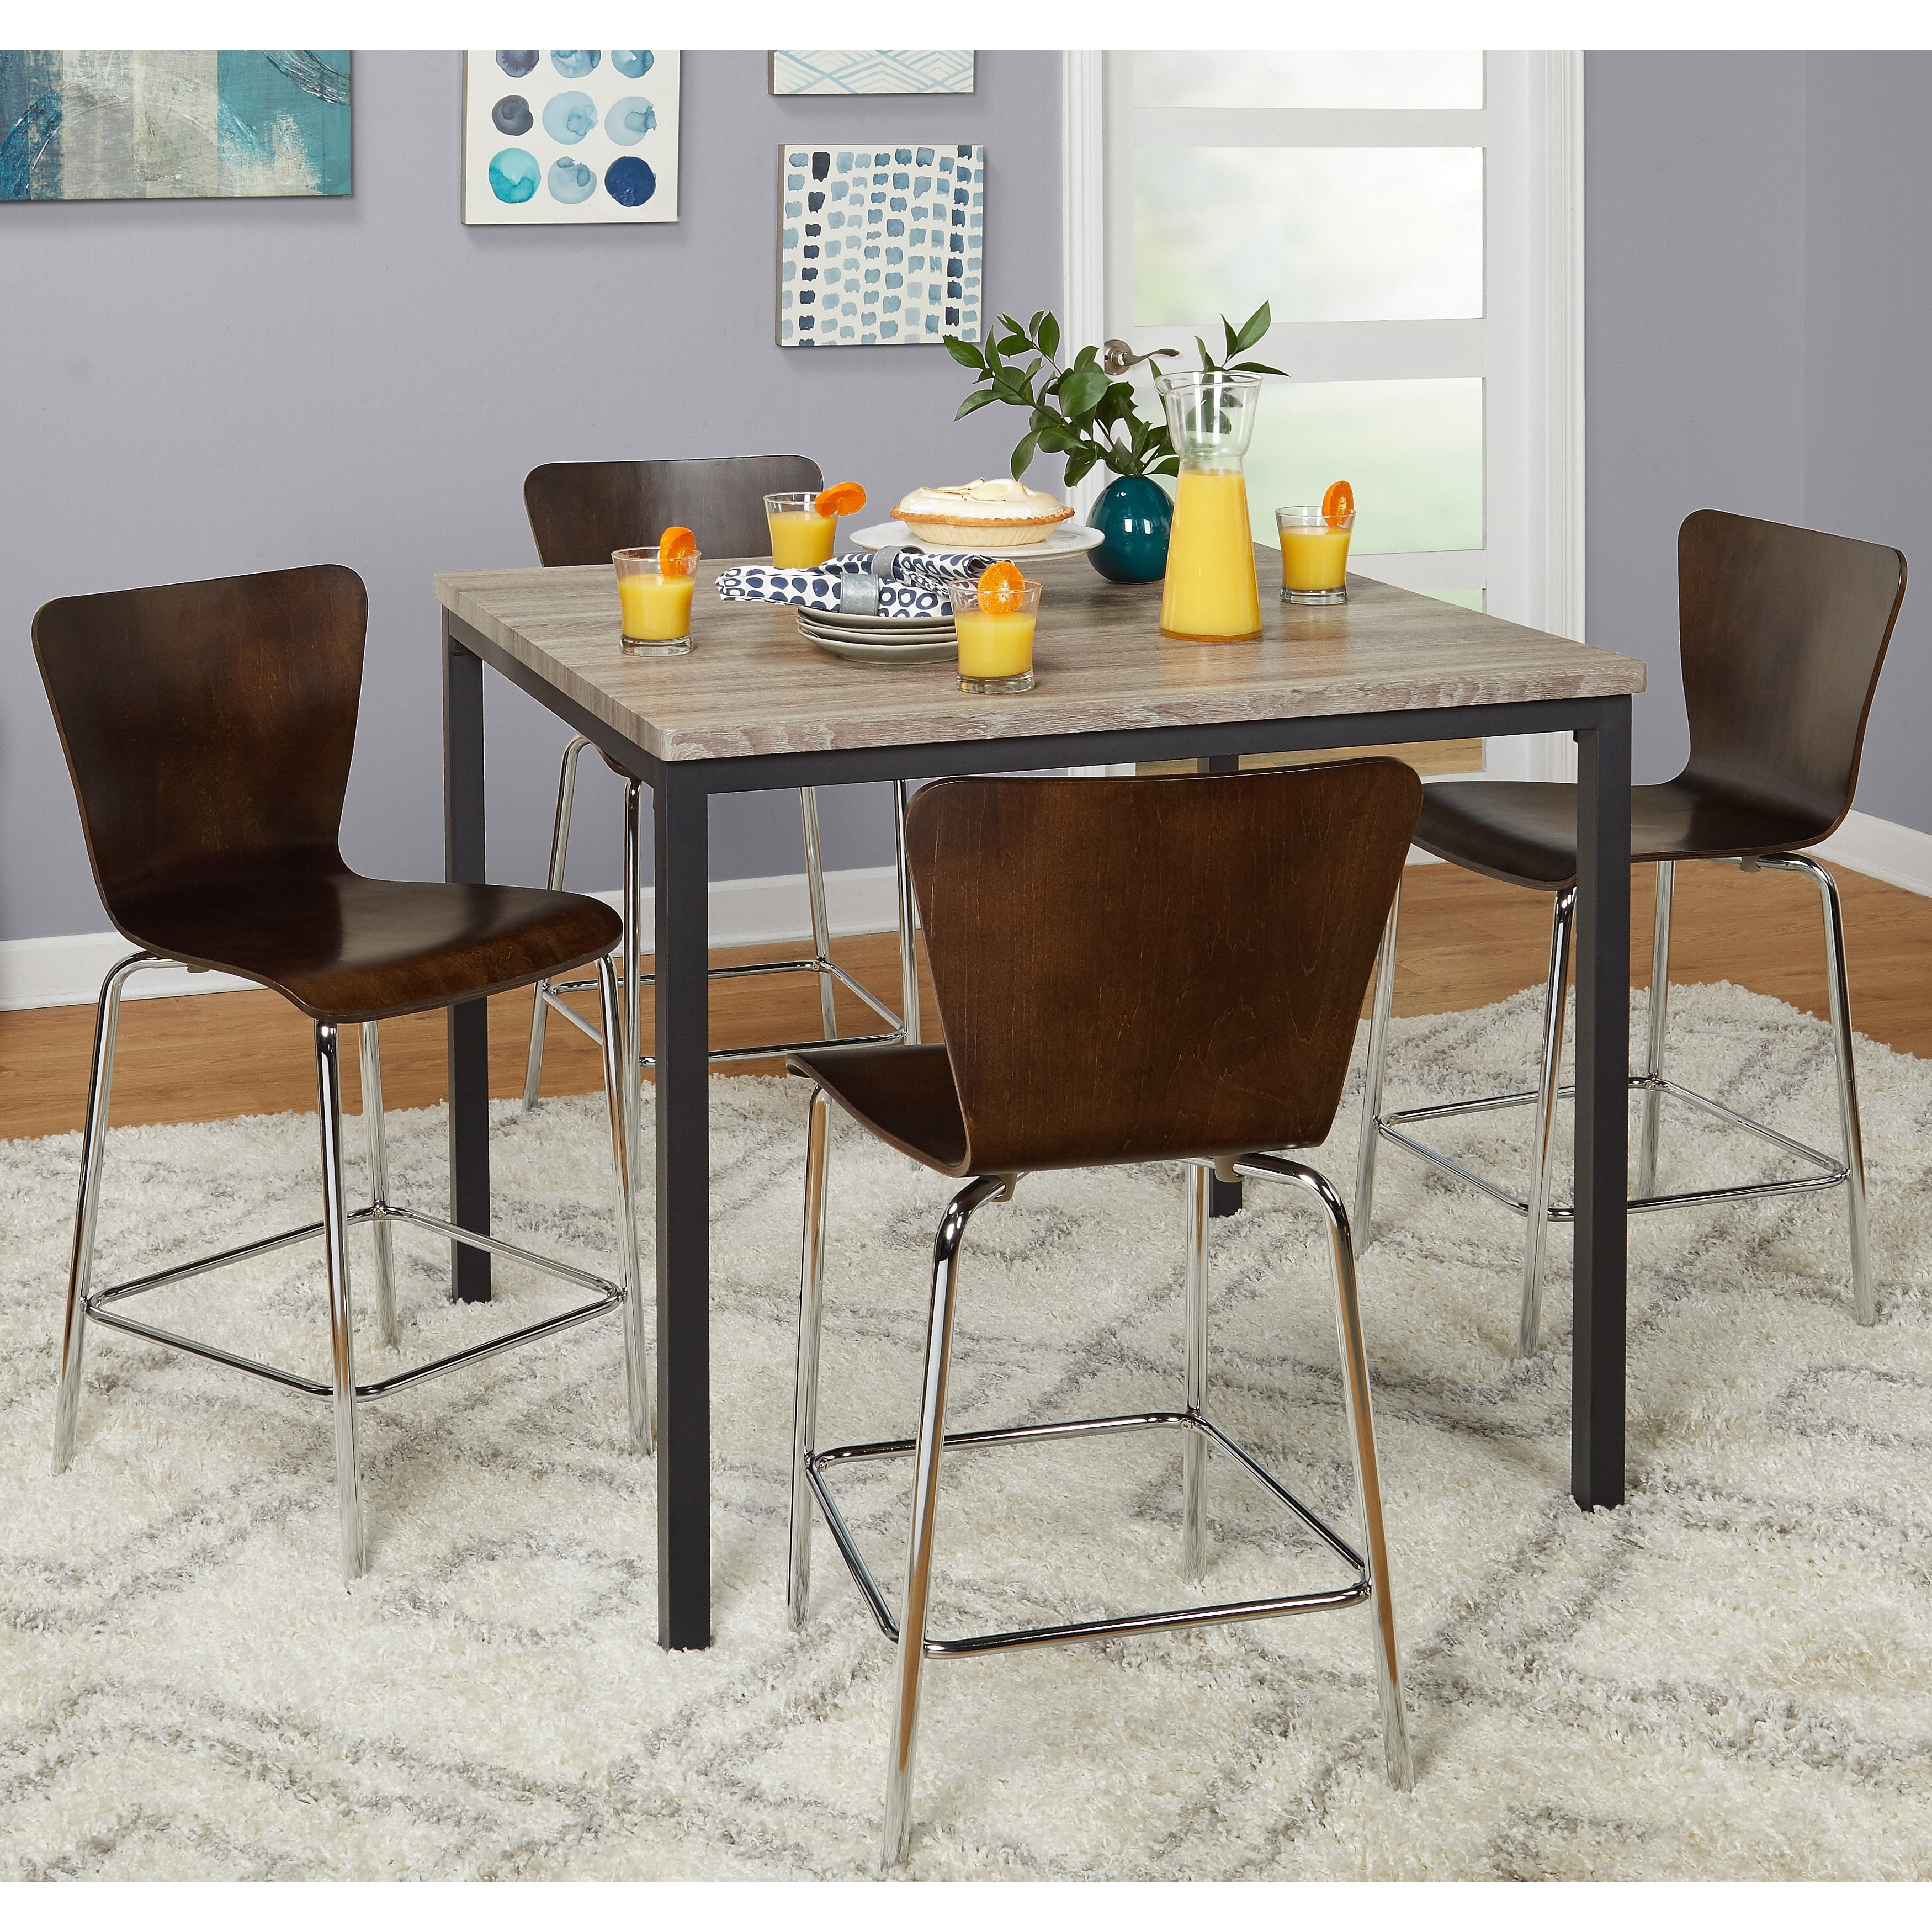 Target Marketing Systems Pavia 5 Piece Counter Height Dining Table Set